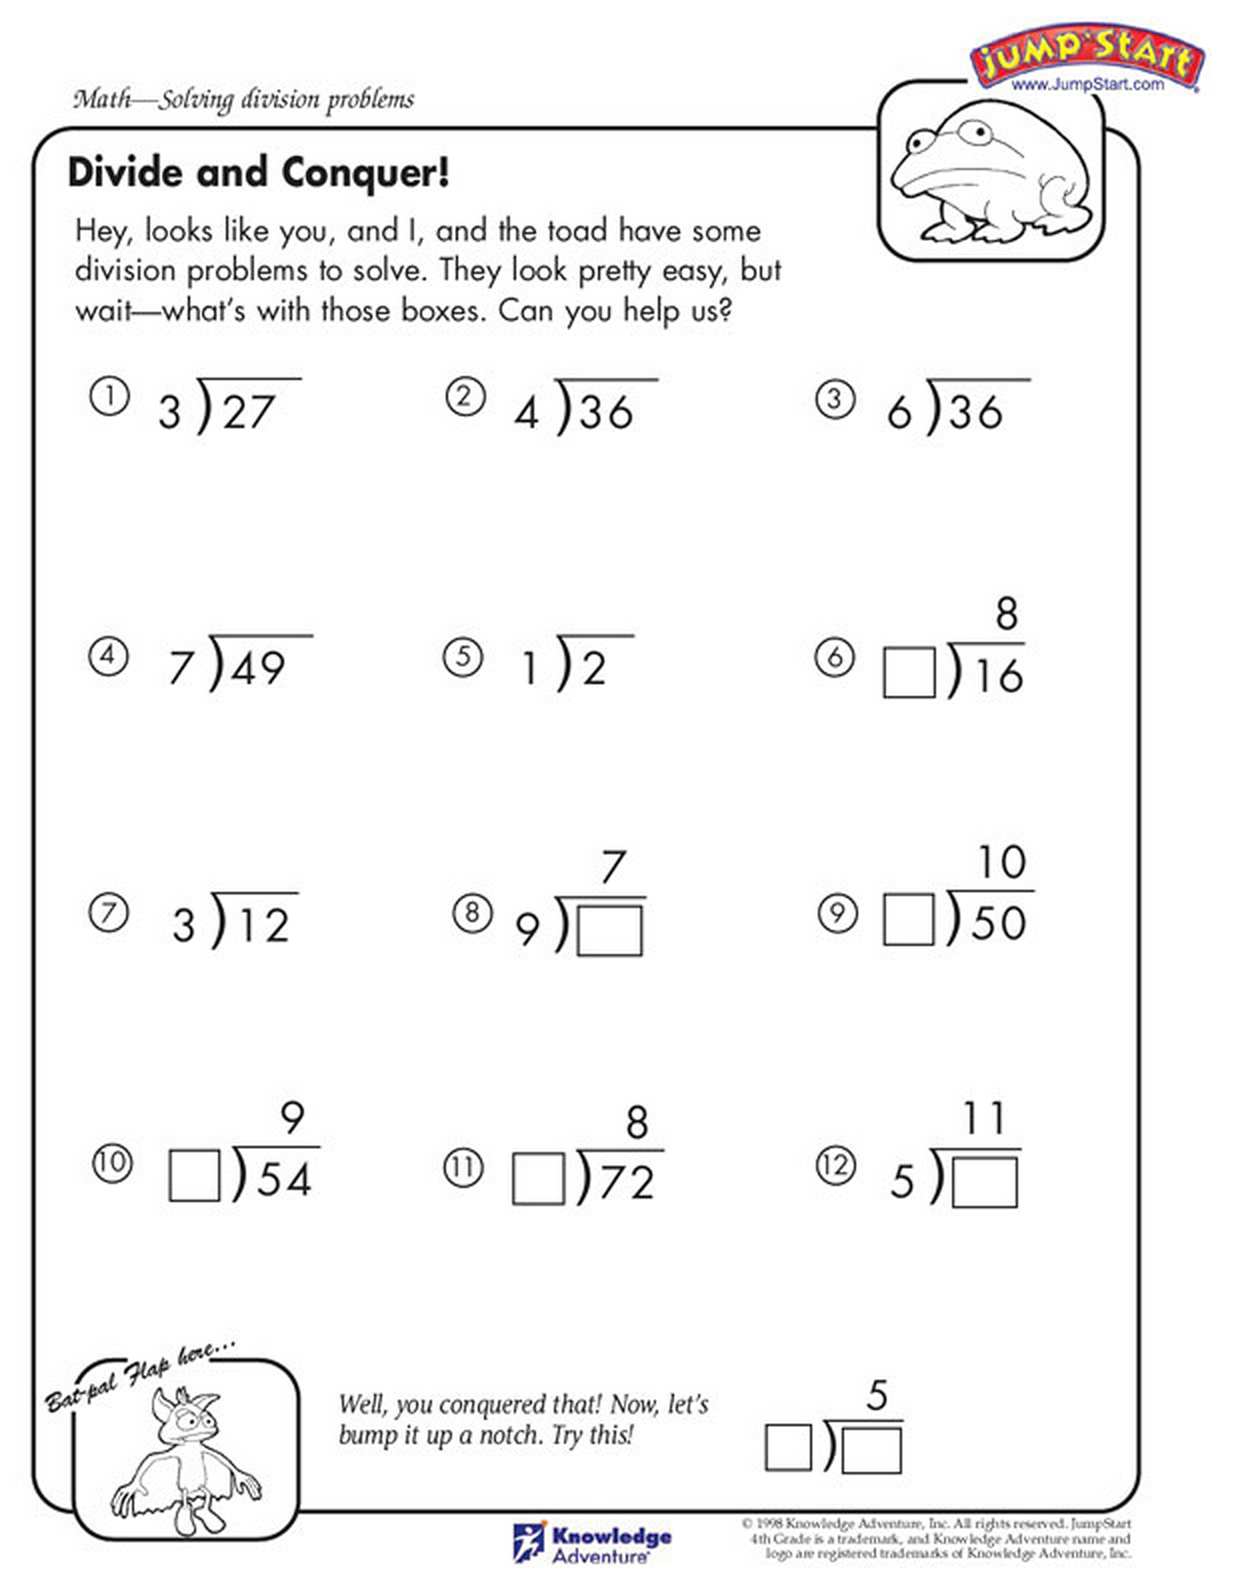 help mister toad solve these division problems printable math sheets pinterest division. Black Bedroom Furniture Sets. Home Design Ideas